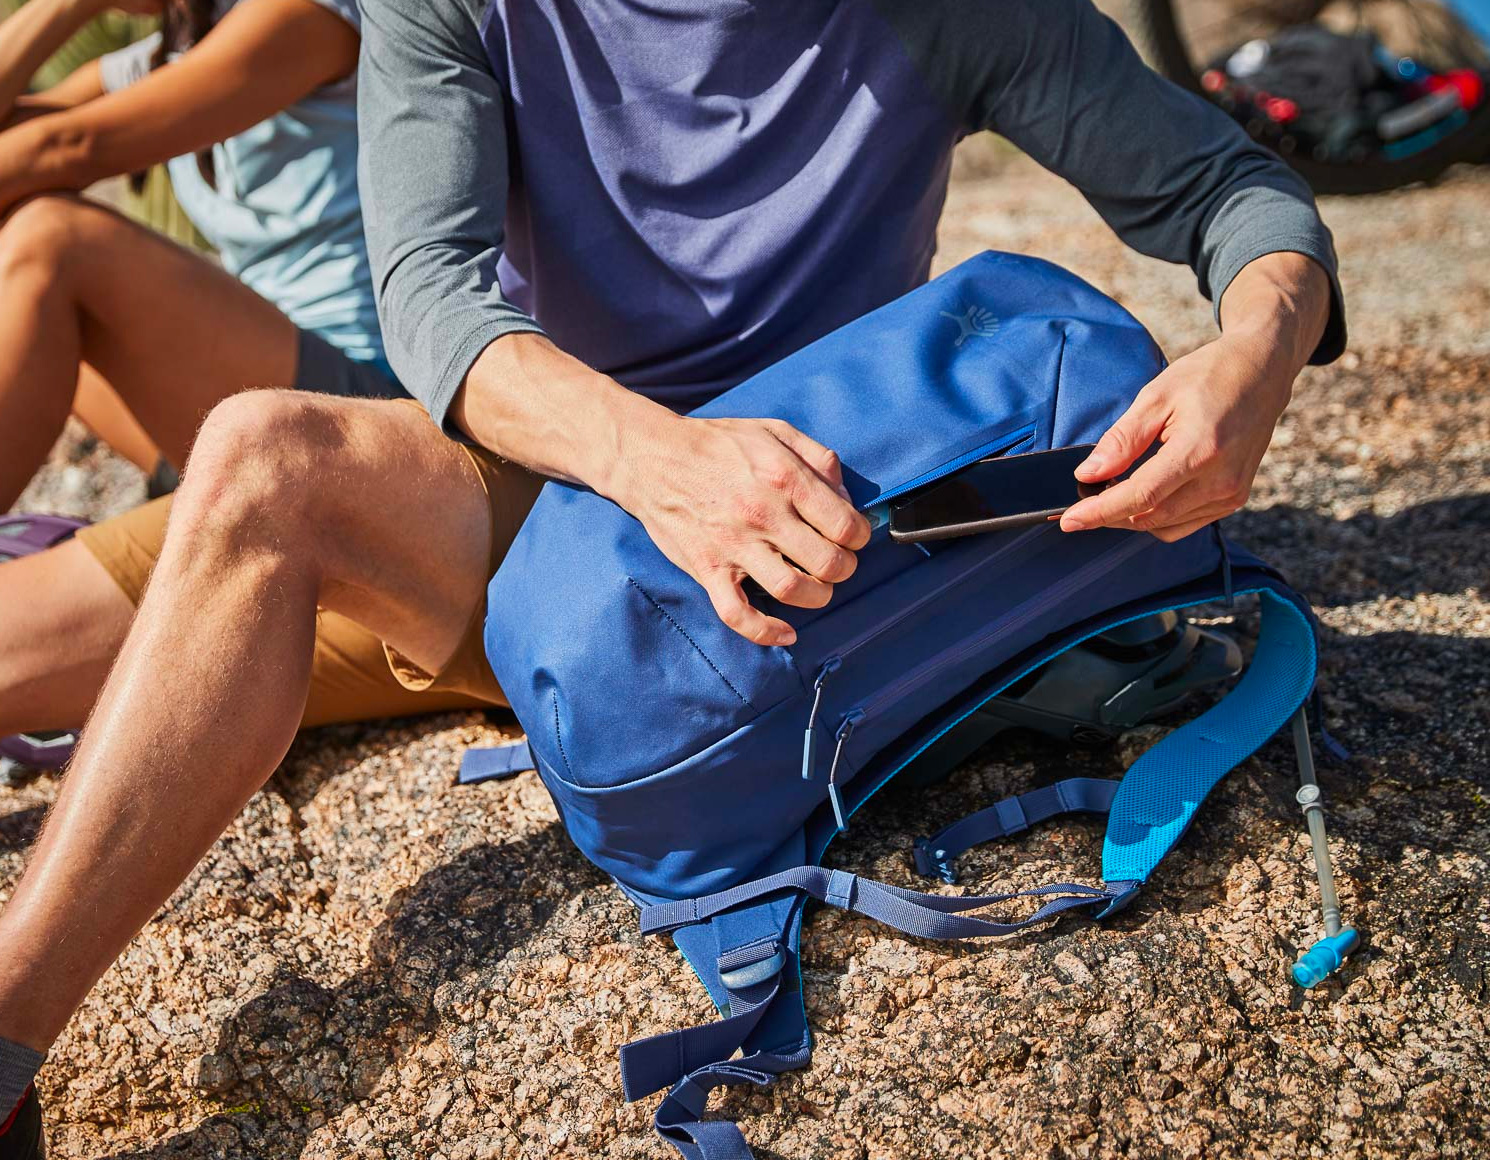 Hydro Flask Introduces Journey Series Hydration Packs at werd.com